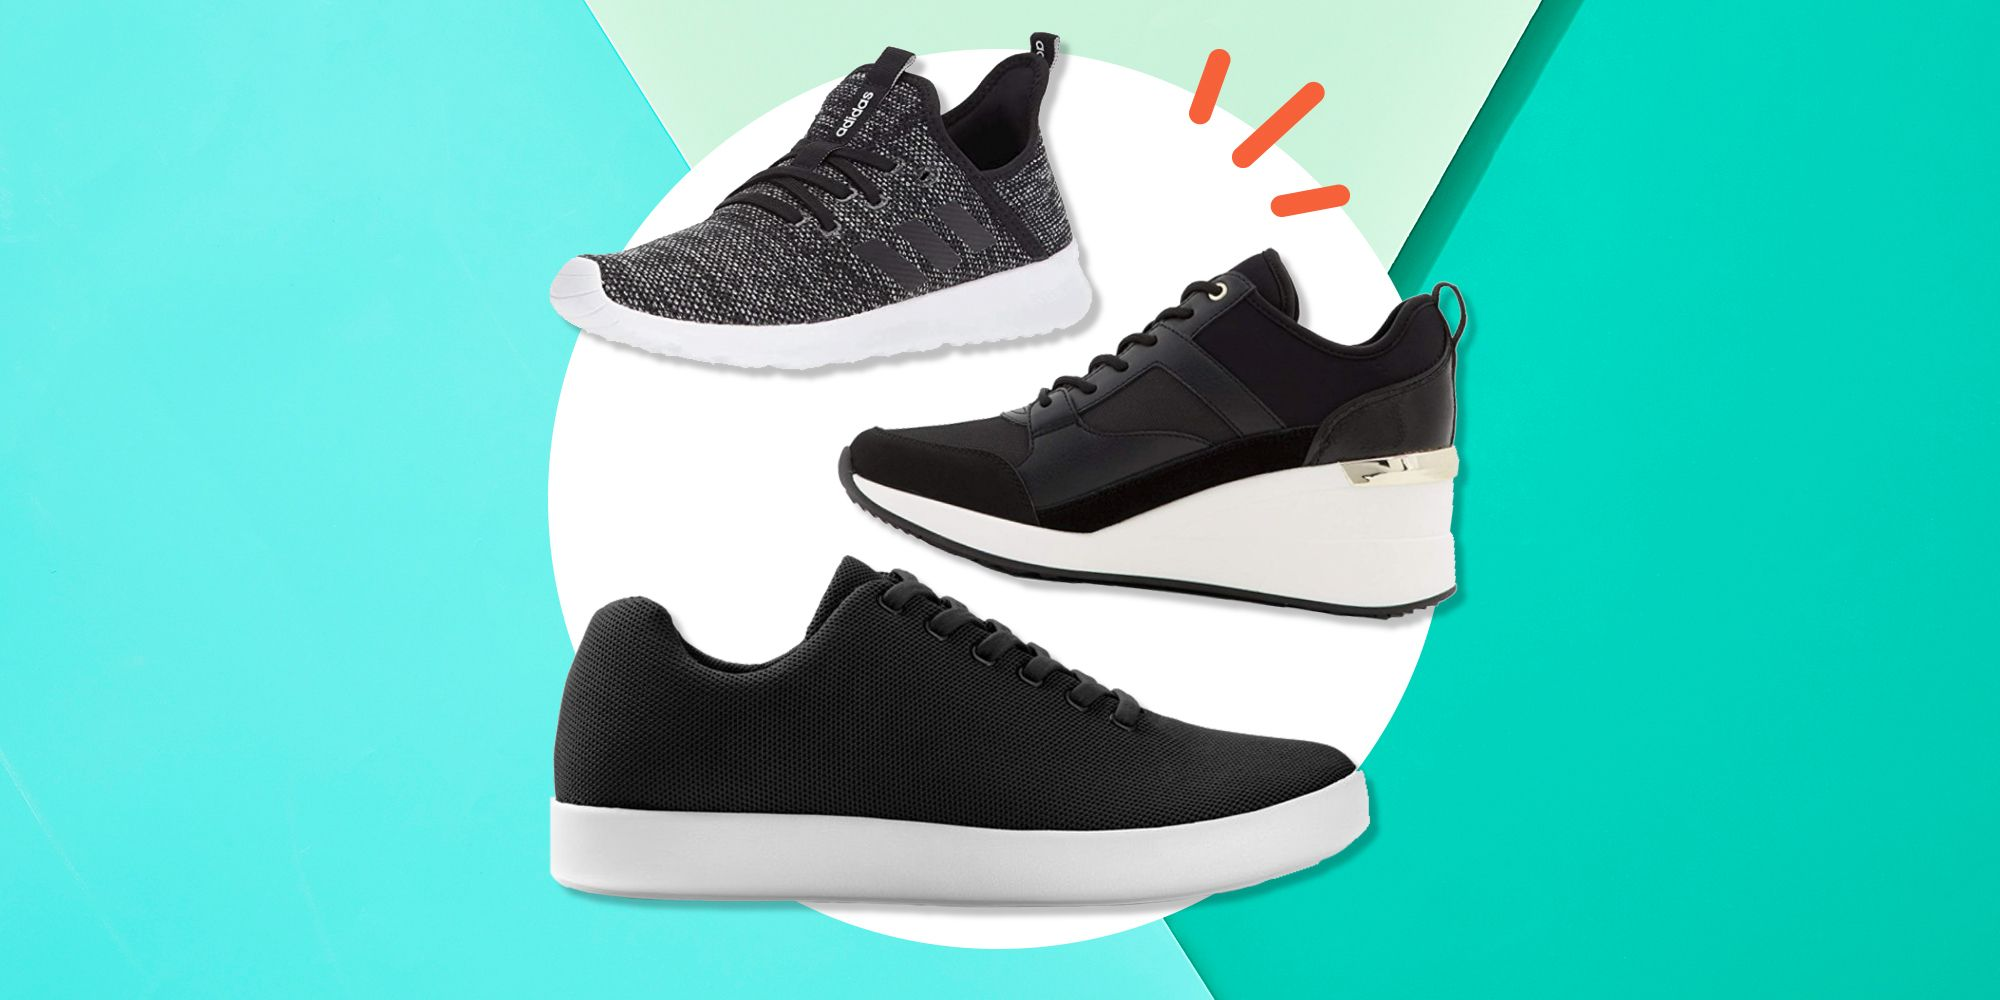 21 Best Black Sneakers For Every Style